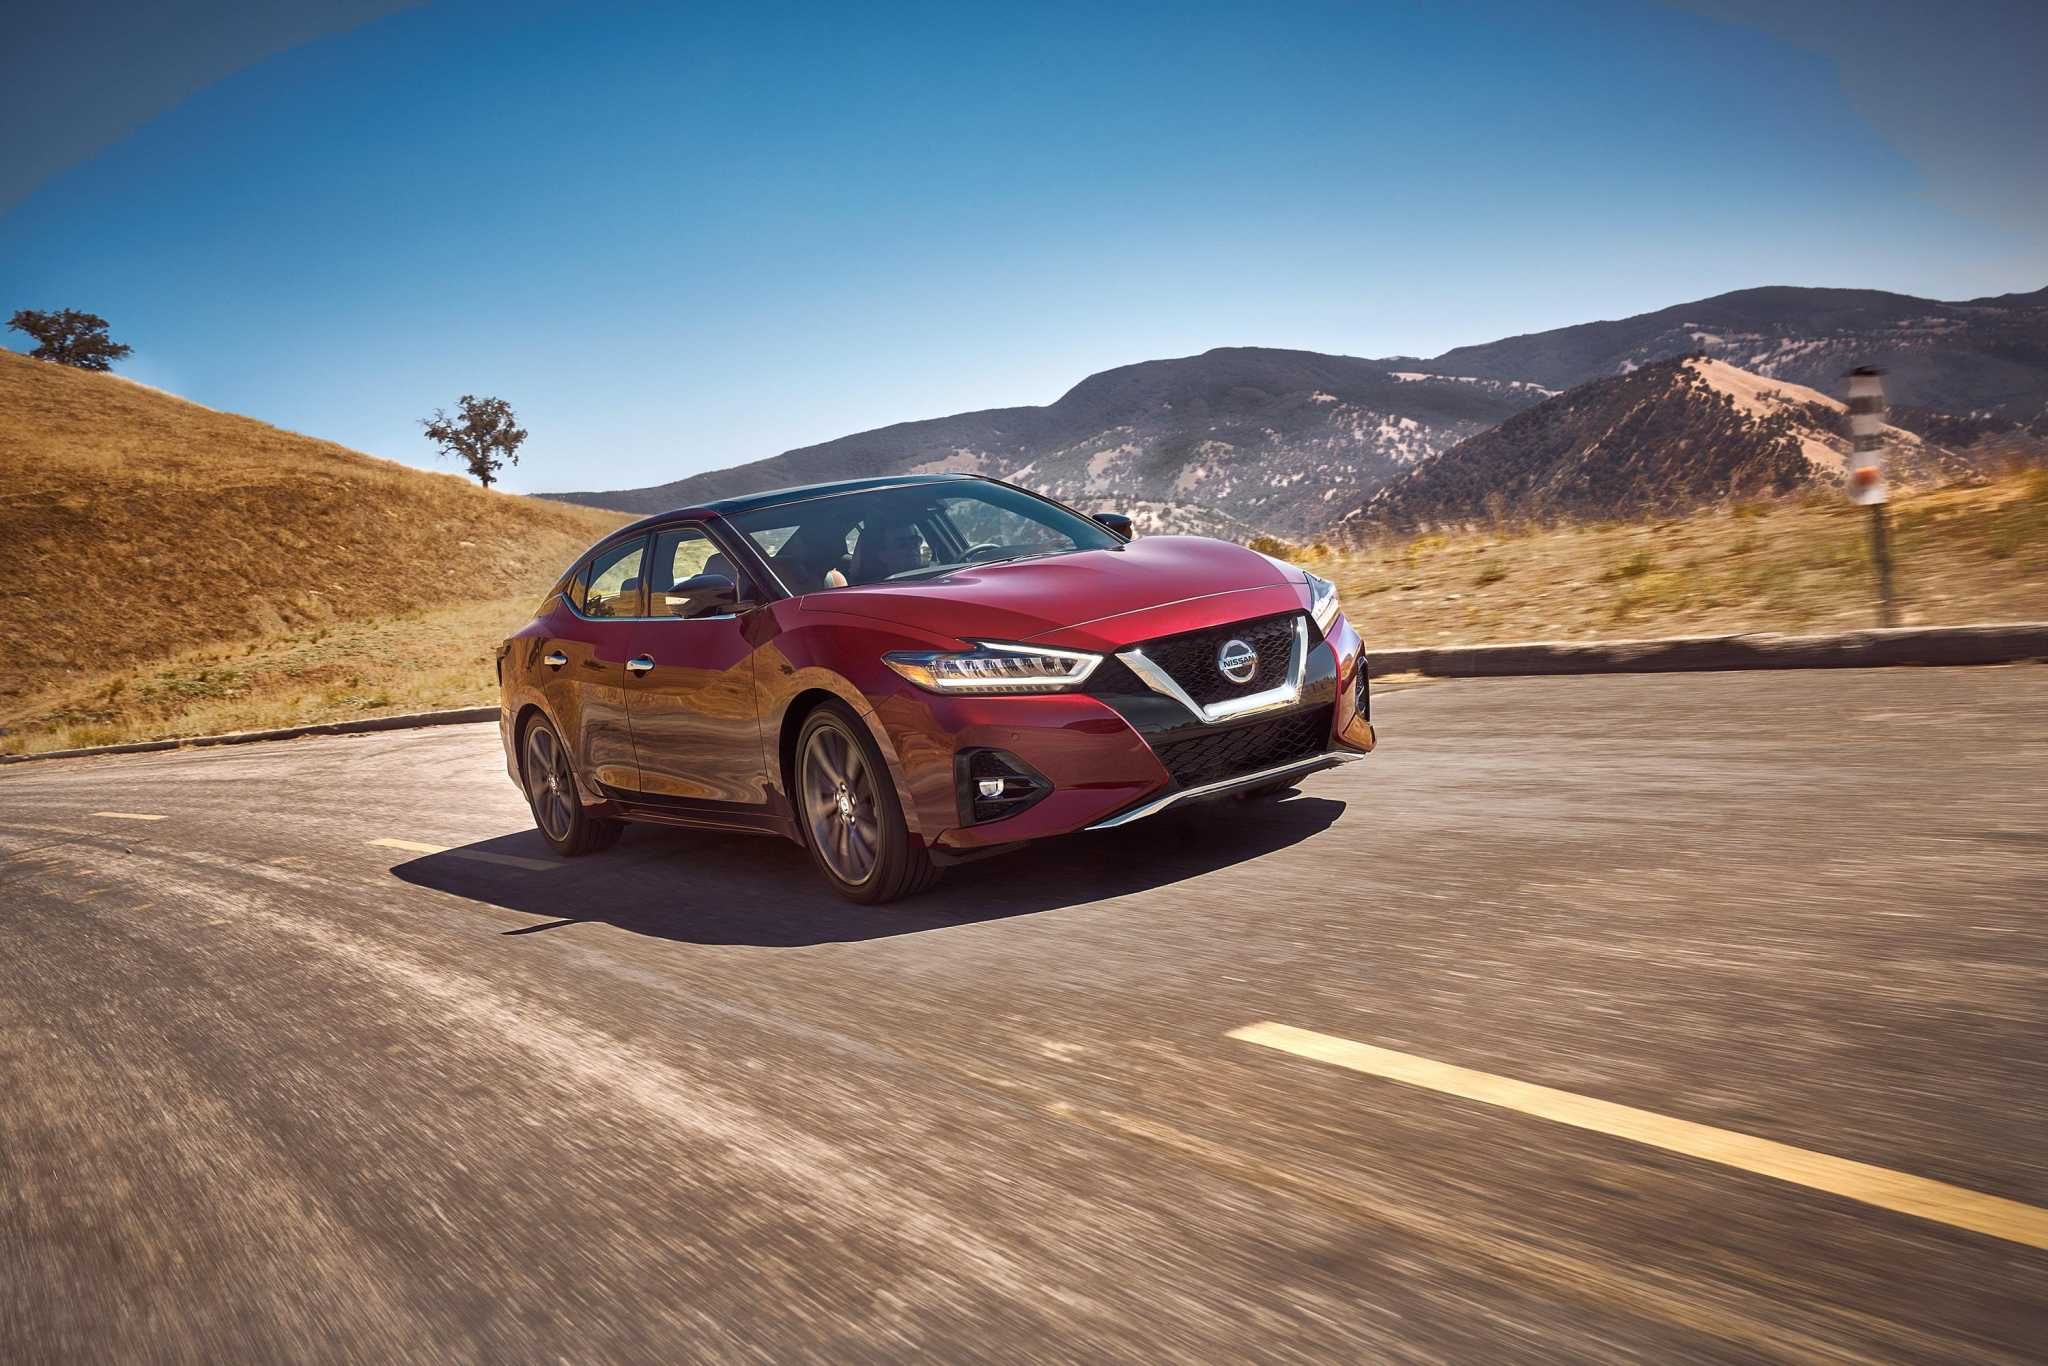 2019 Nissan Maxima: Enduring sedan mixes tradition with sportiness